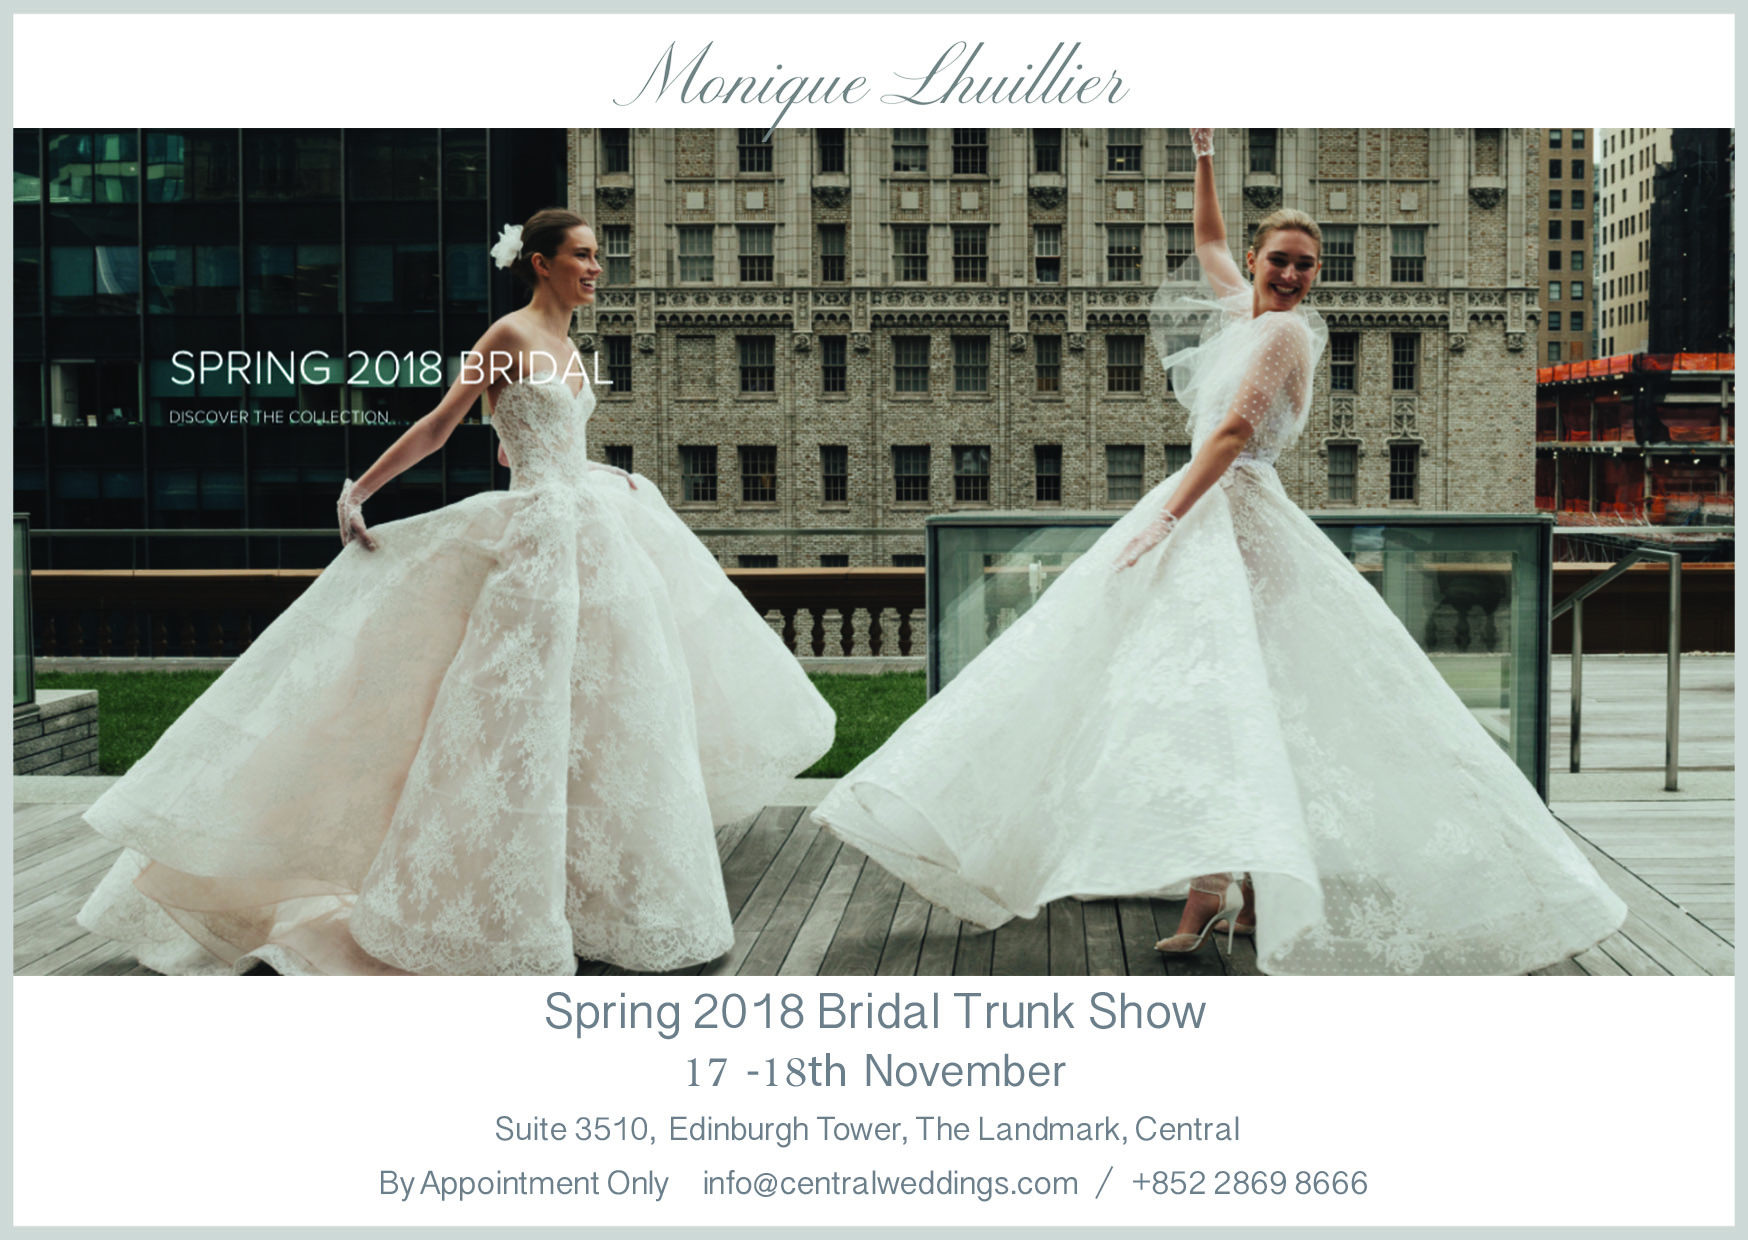 Monique Lhuillier Bridal Trunk Show | Central Weddings